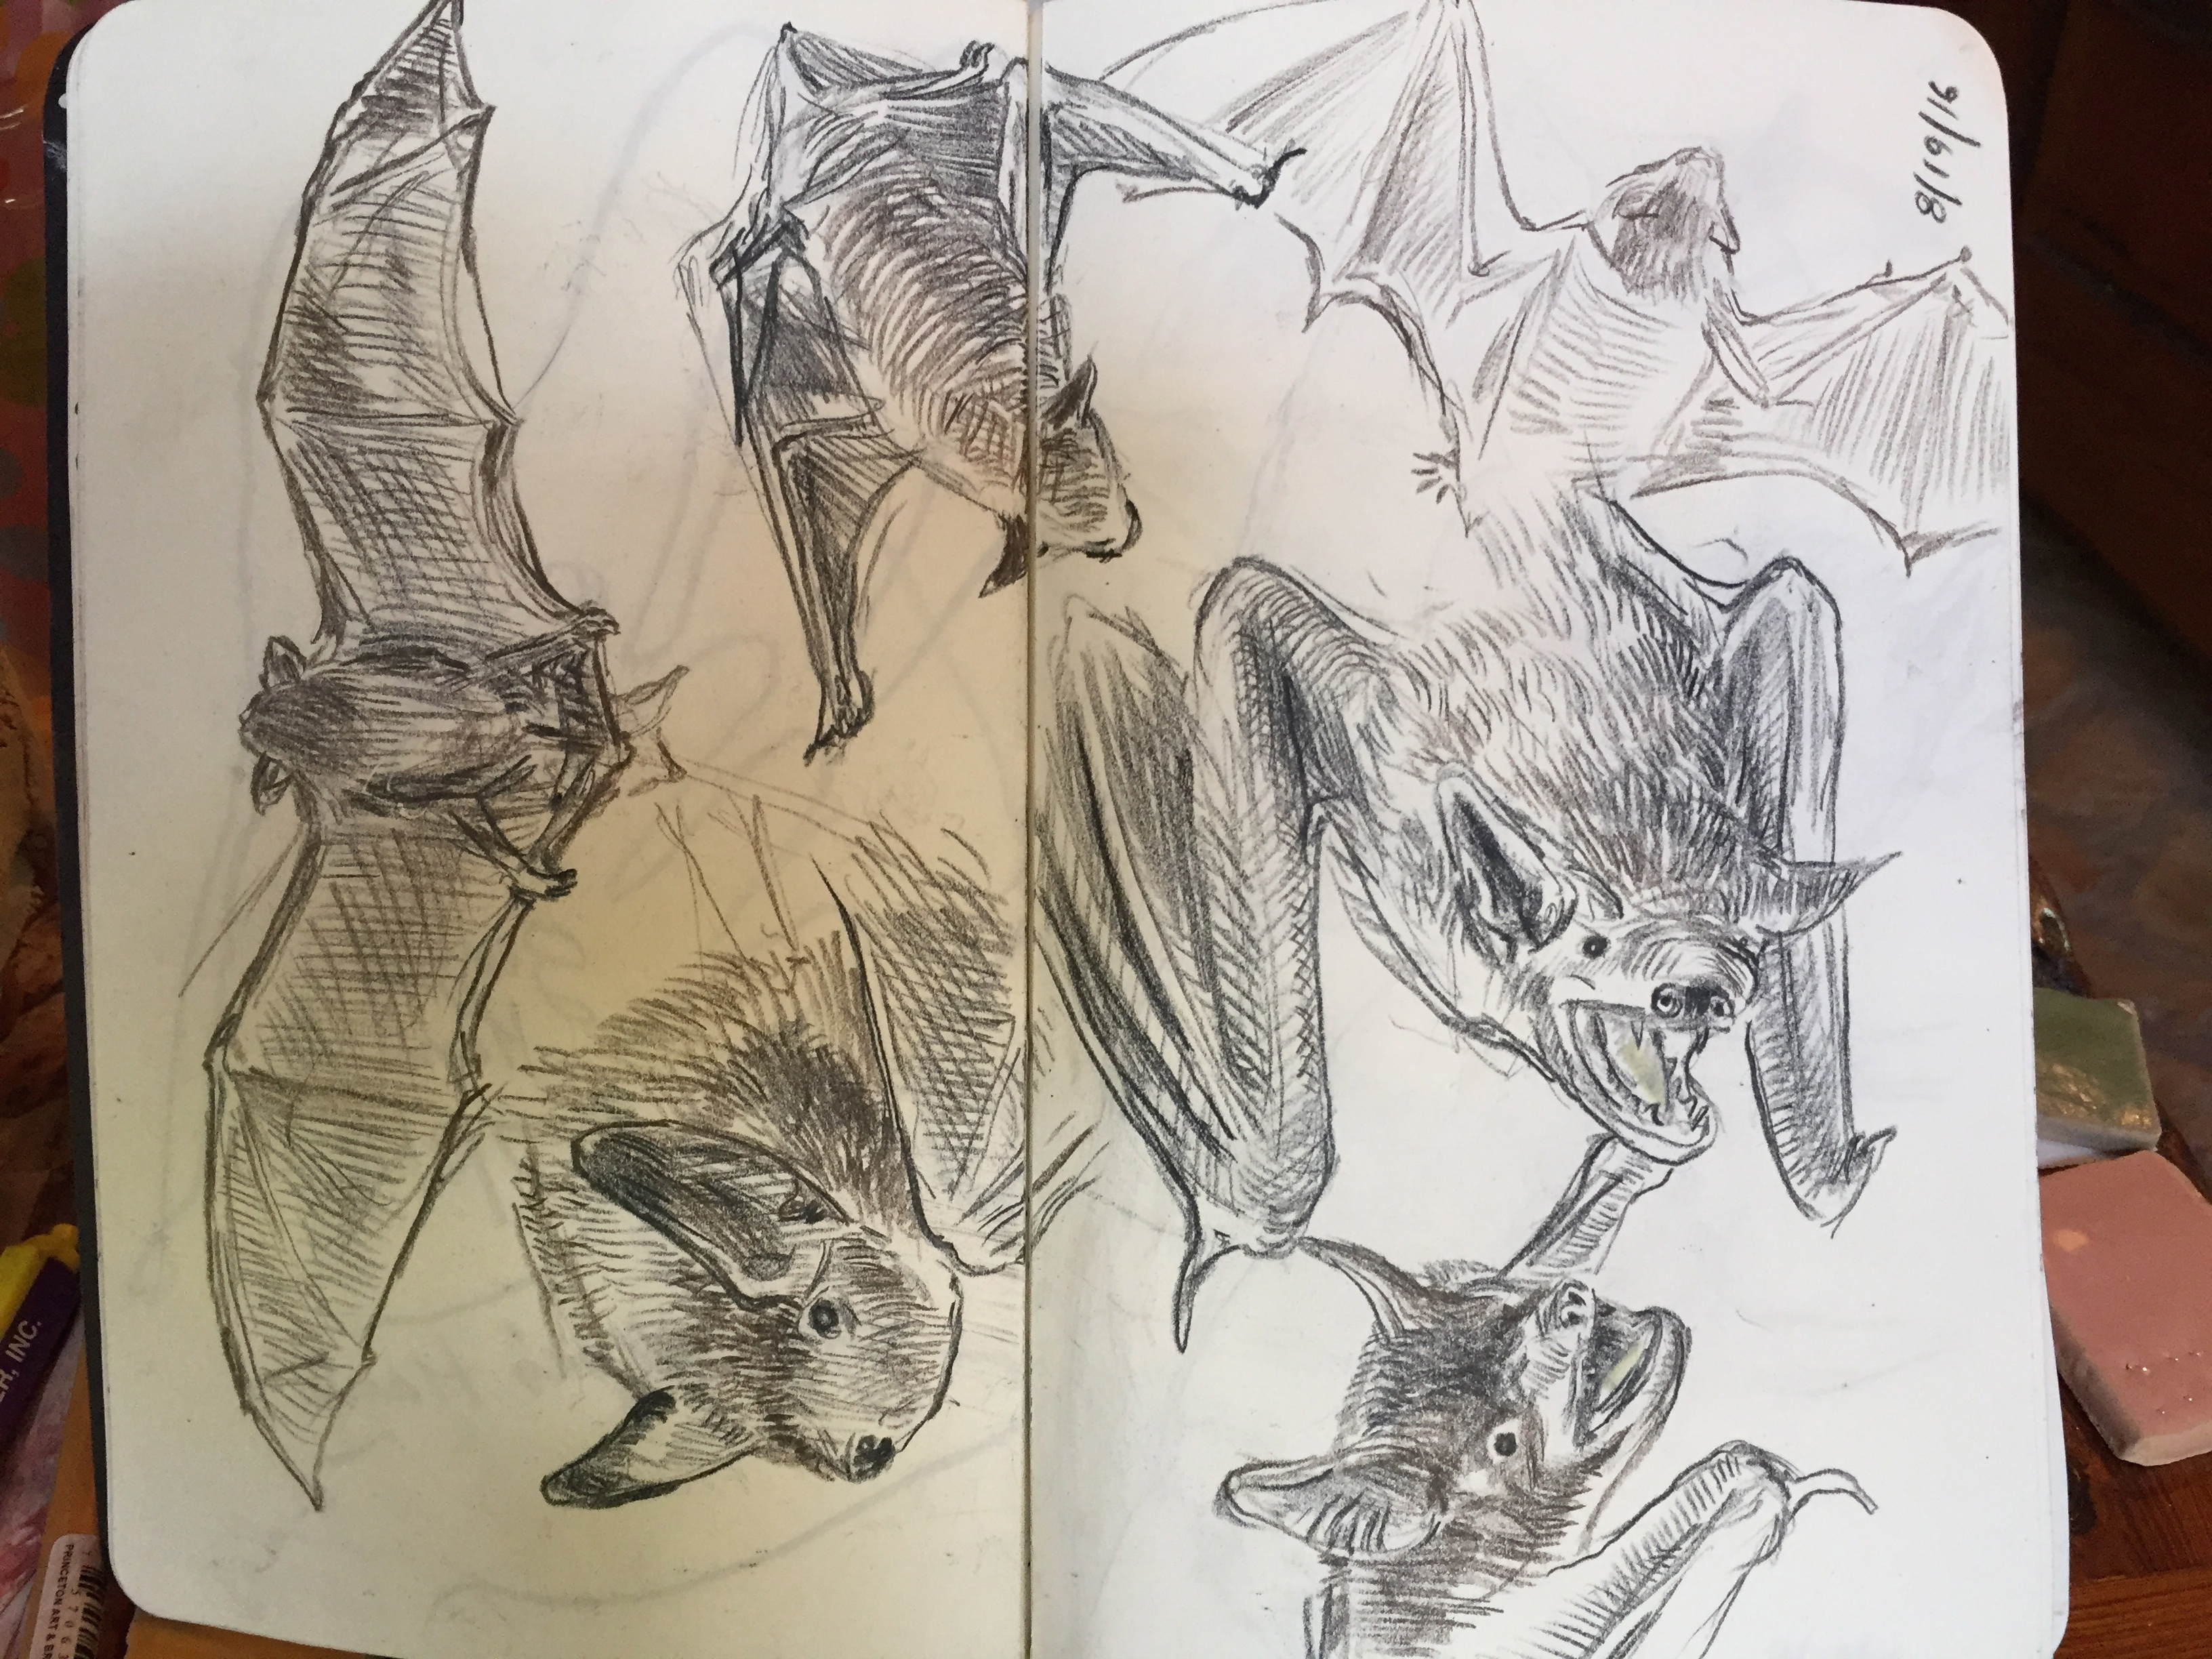 Bat Studies II